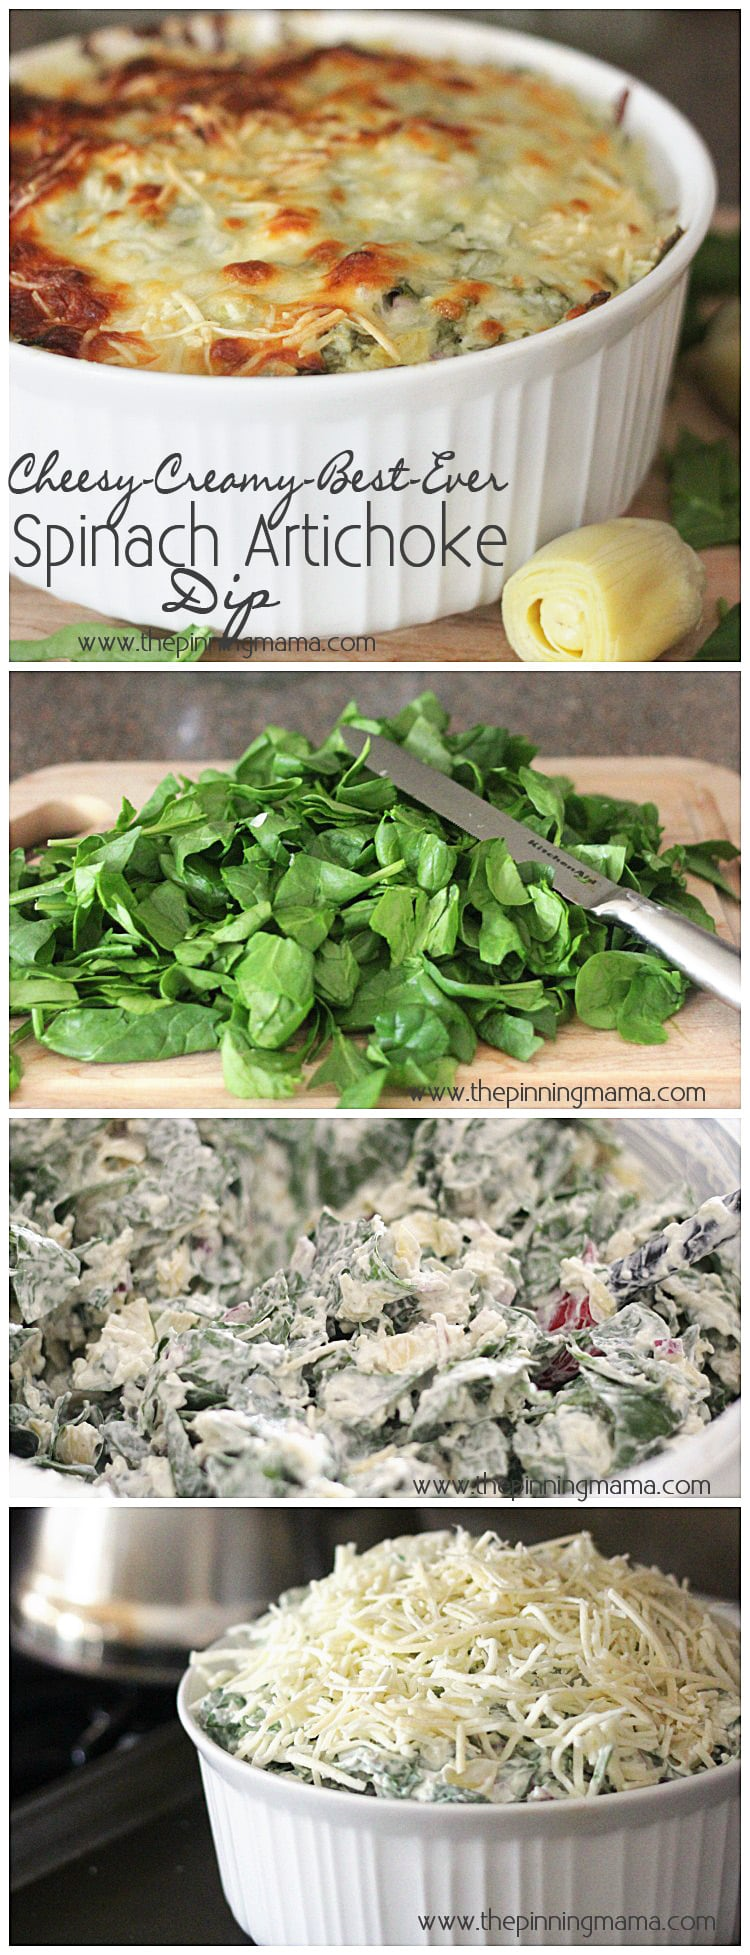 Best Ever Hot Spinach Artichoke Dip Recipe